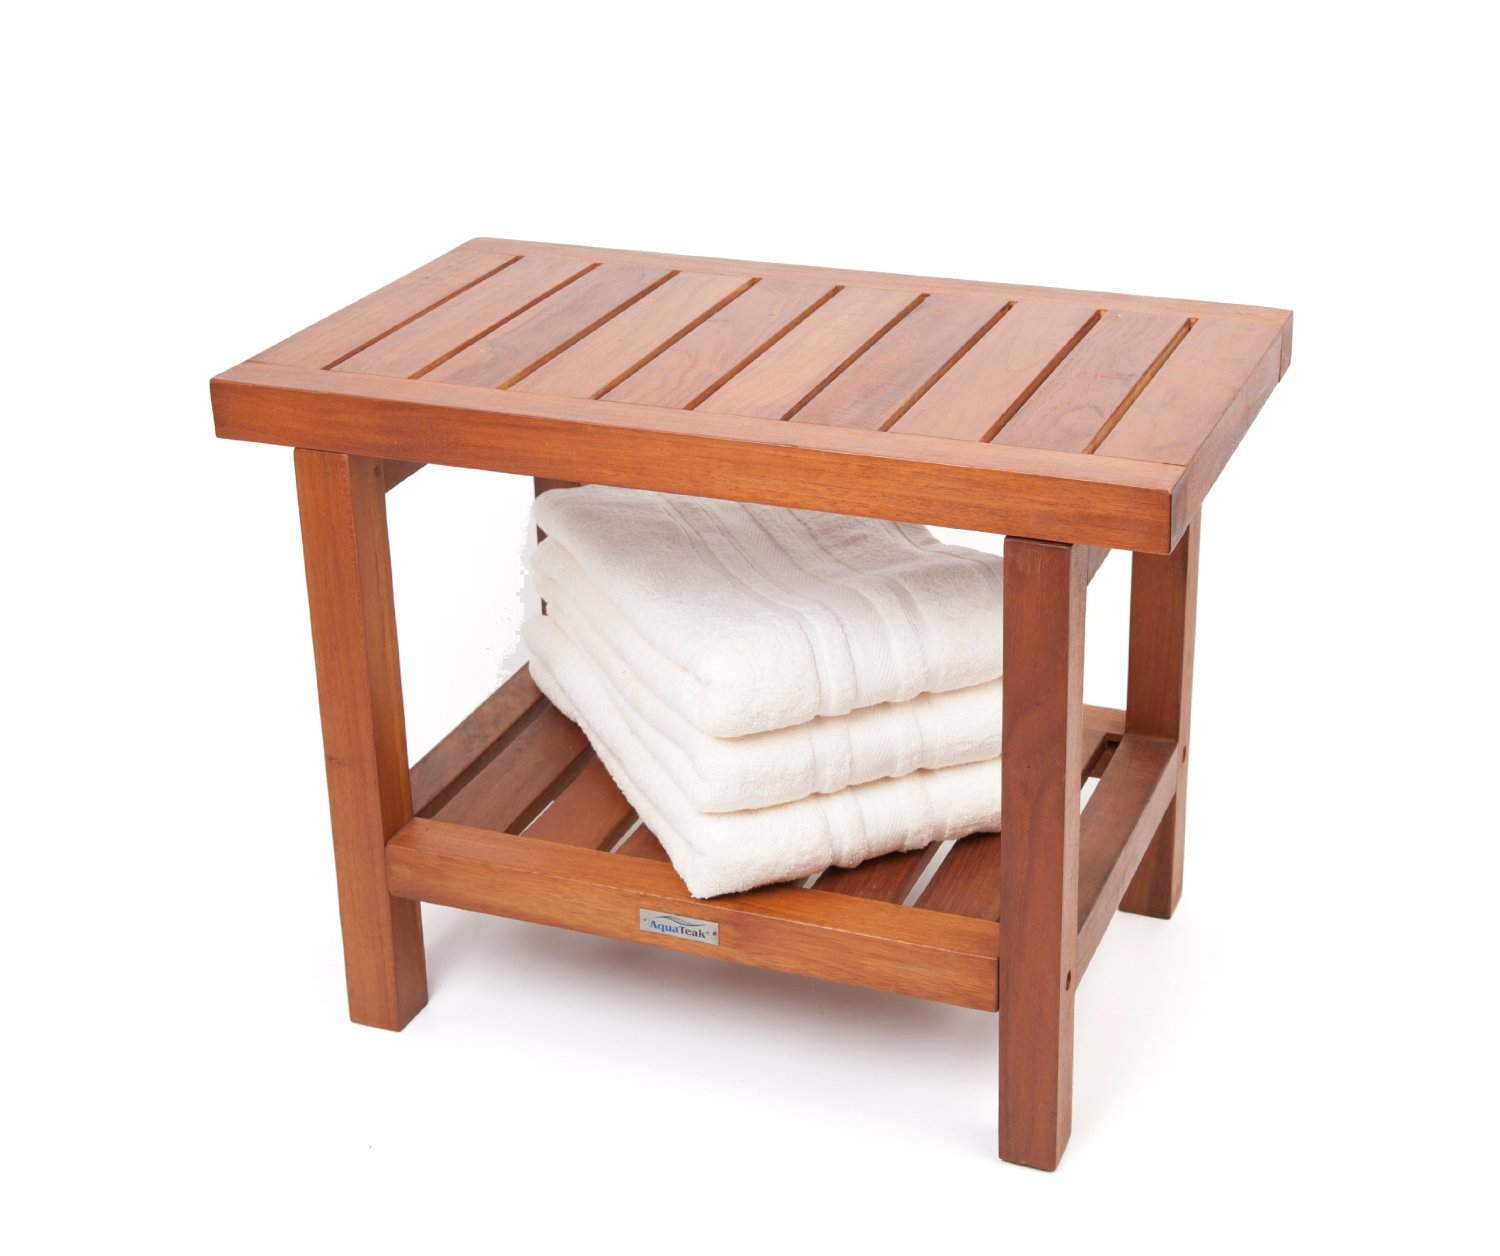 Image of: teak shower bench